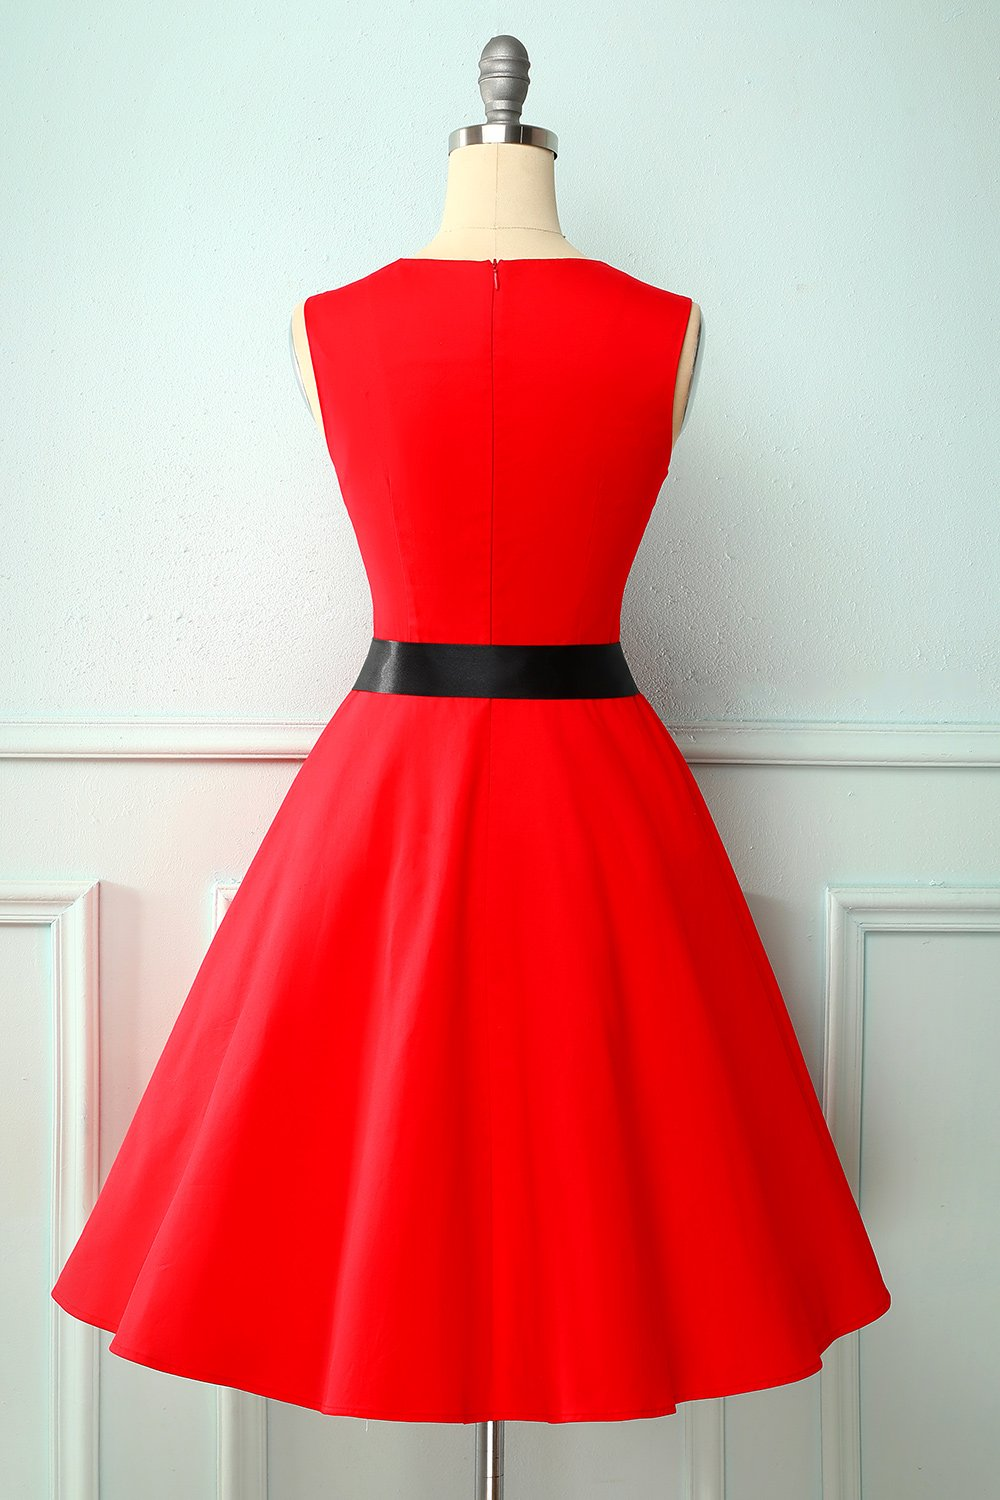 Vintage Red 1950s Style Dress